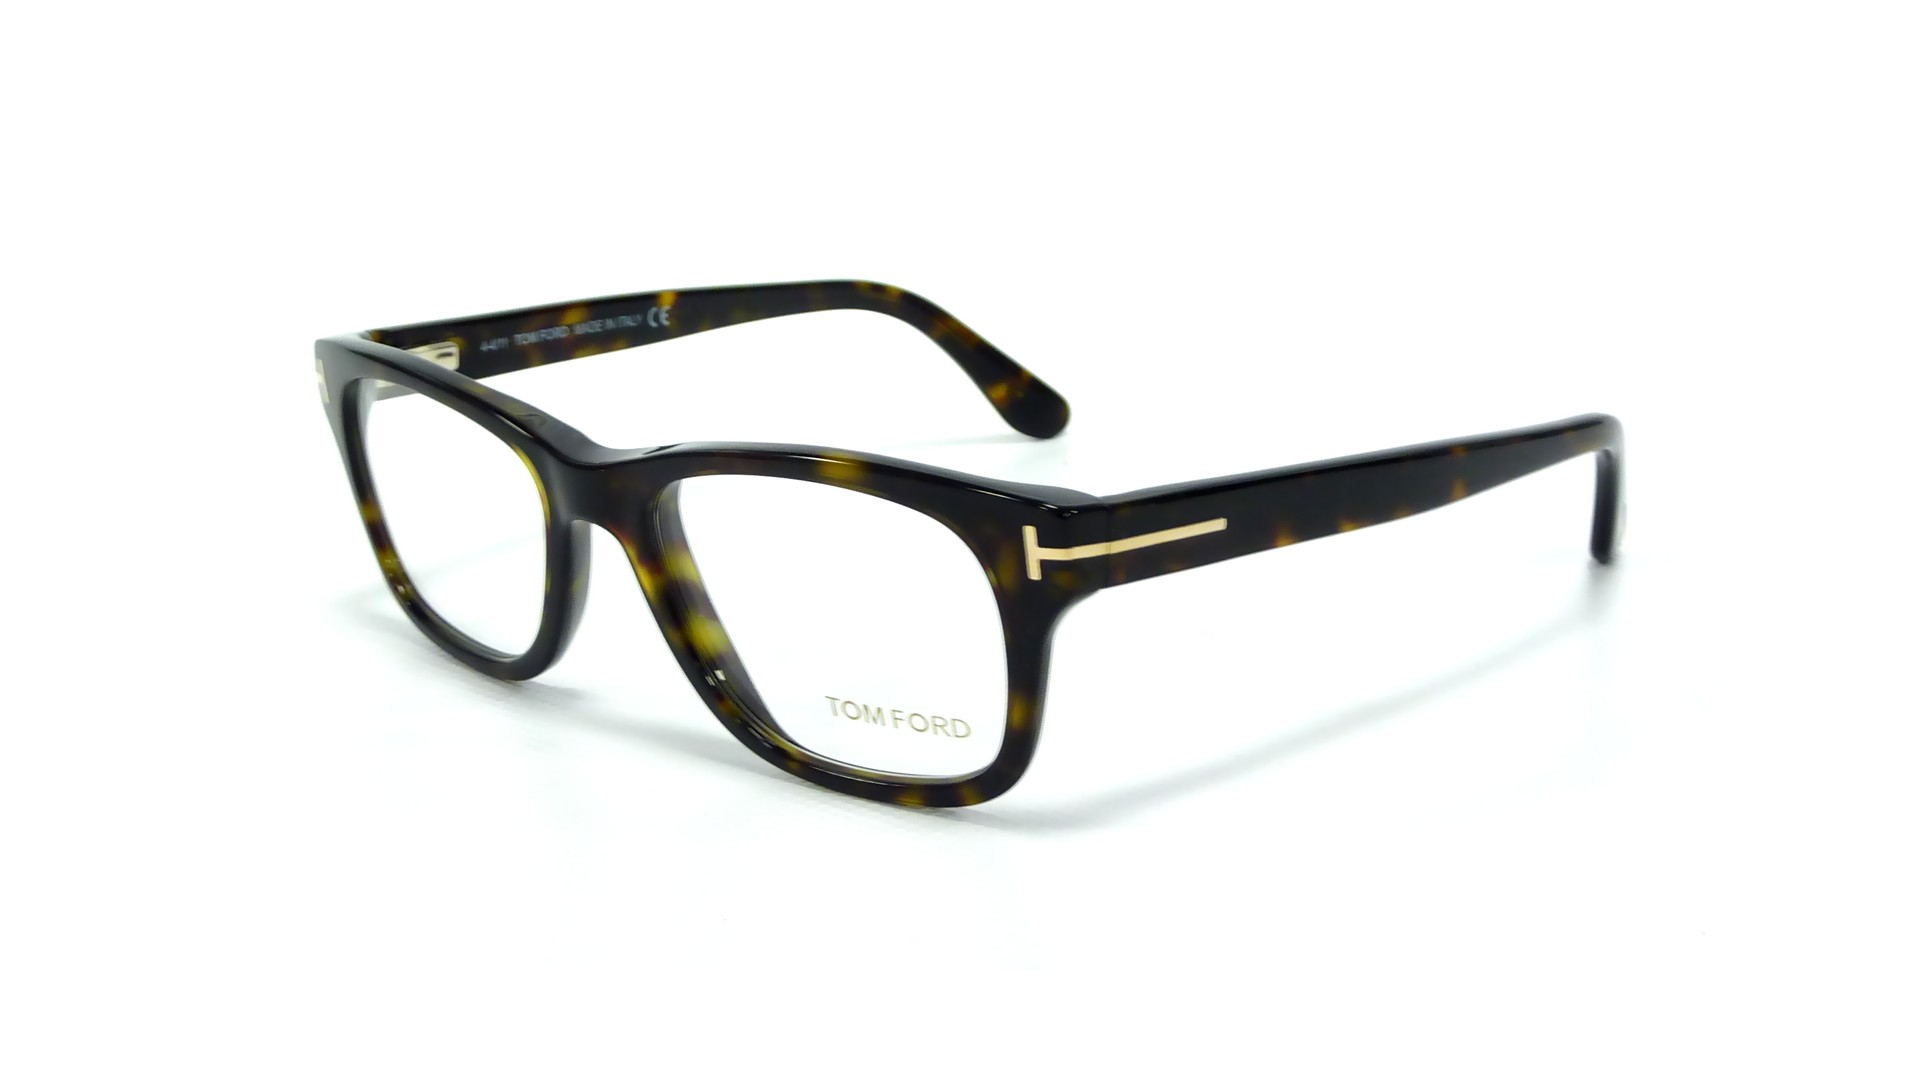 Tom Ford TF 5147 052 Tortoise Medium